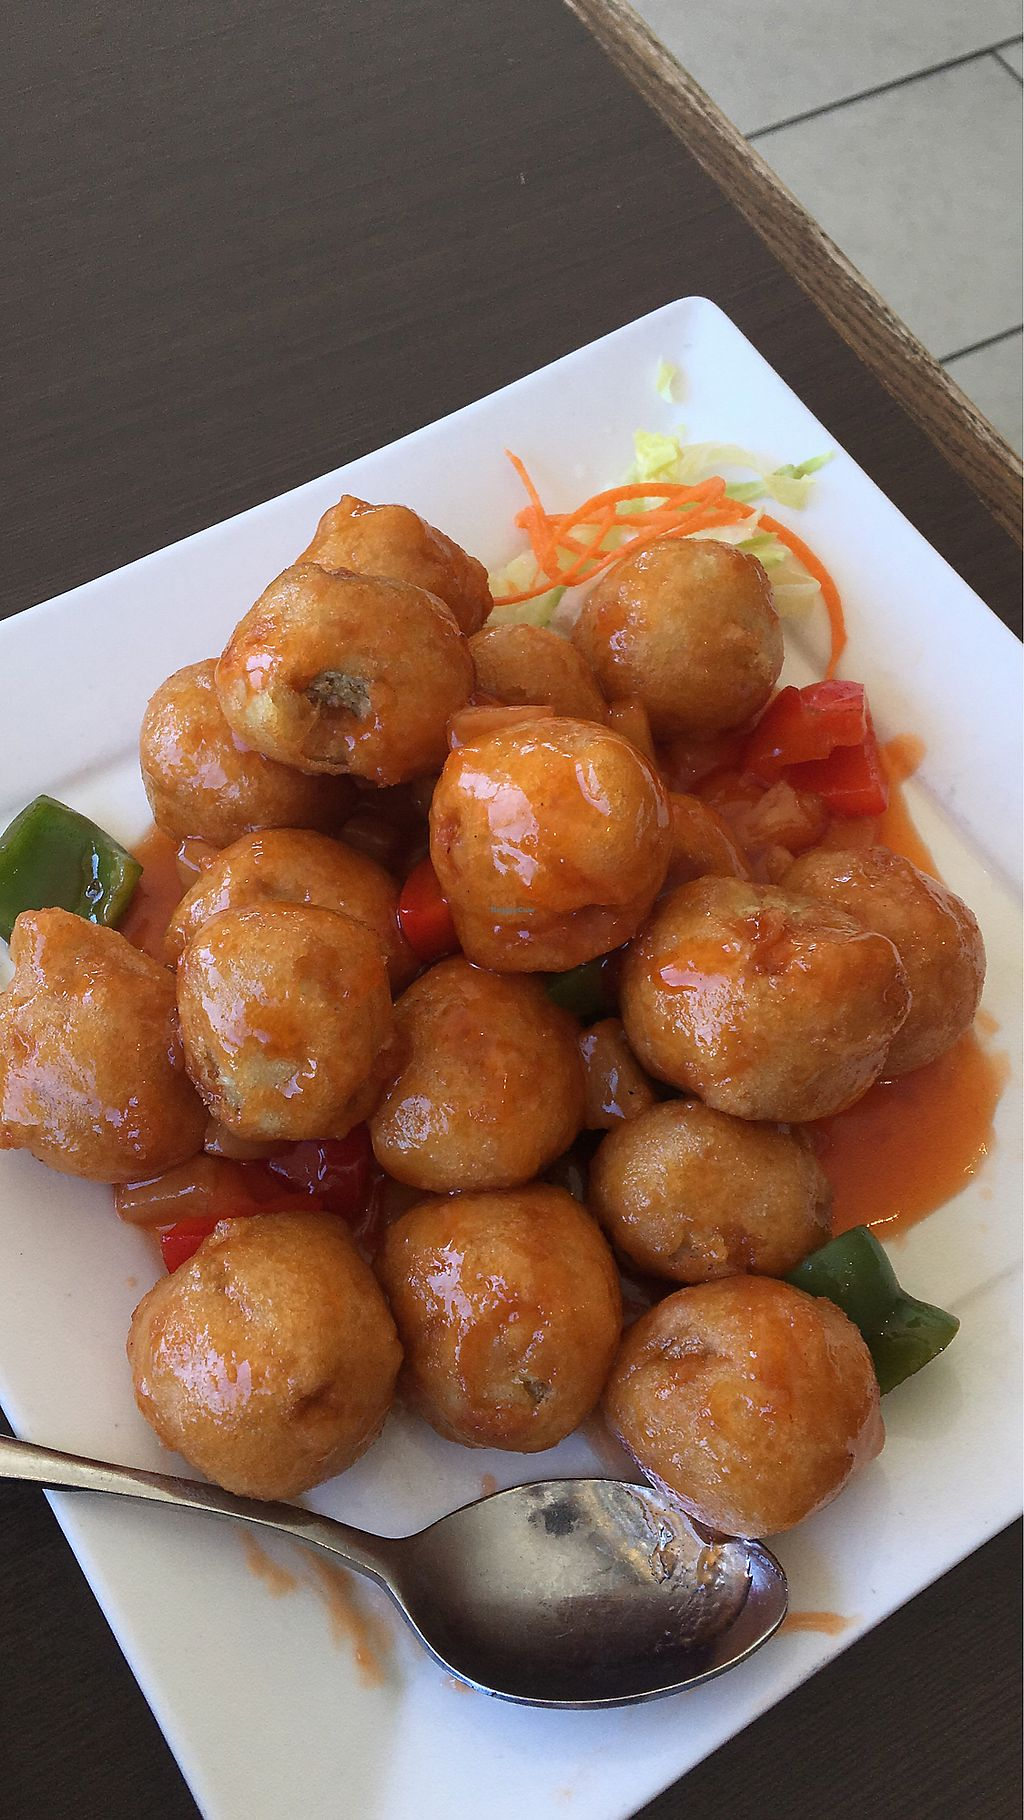 """Photo of Greens Vegetarian Restaurant  by <a href=""""/members/profile/JessicaPNutEsteves"""">JessicaPNutEsteves</a> <br/>Sweet and sour <br/> April 24, 2018  - <a href='/contact/abuse/image/24128/390597'>Report</a>"""